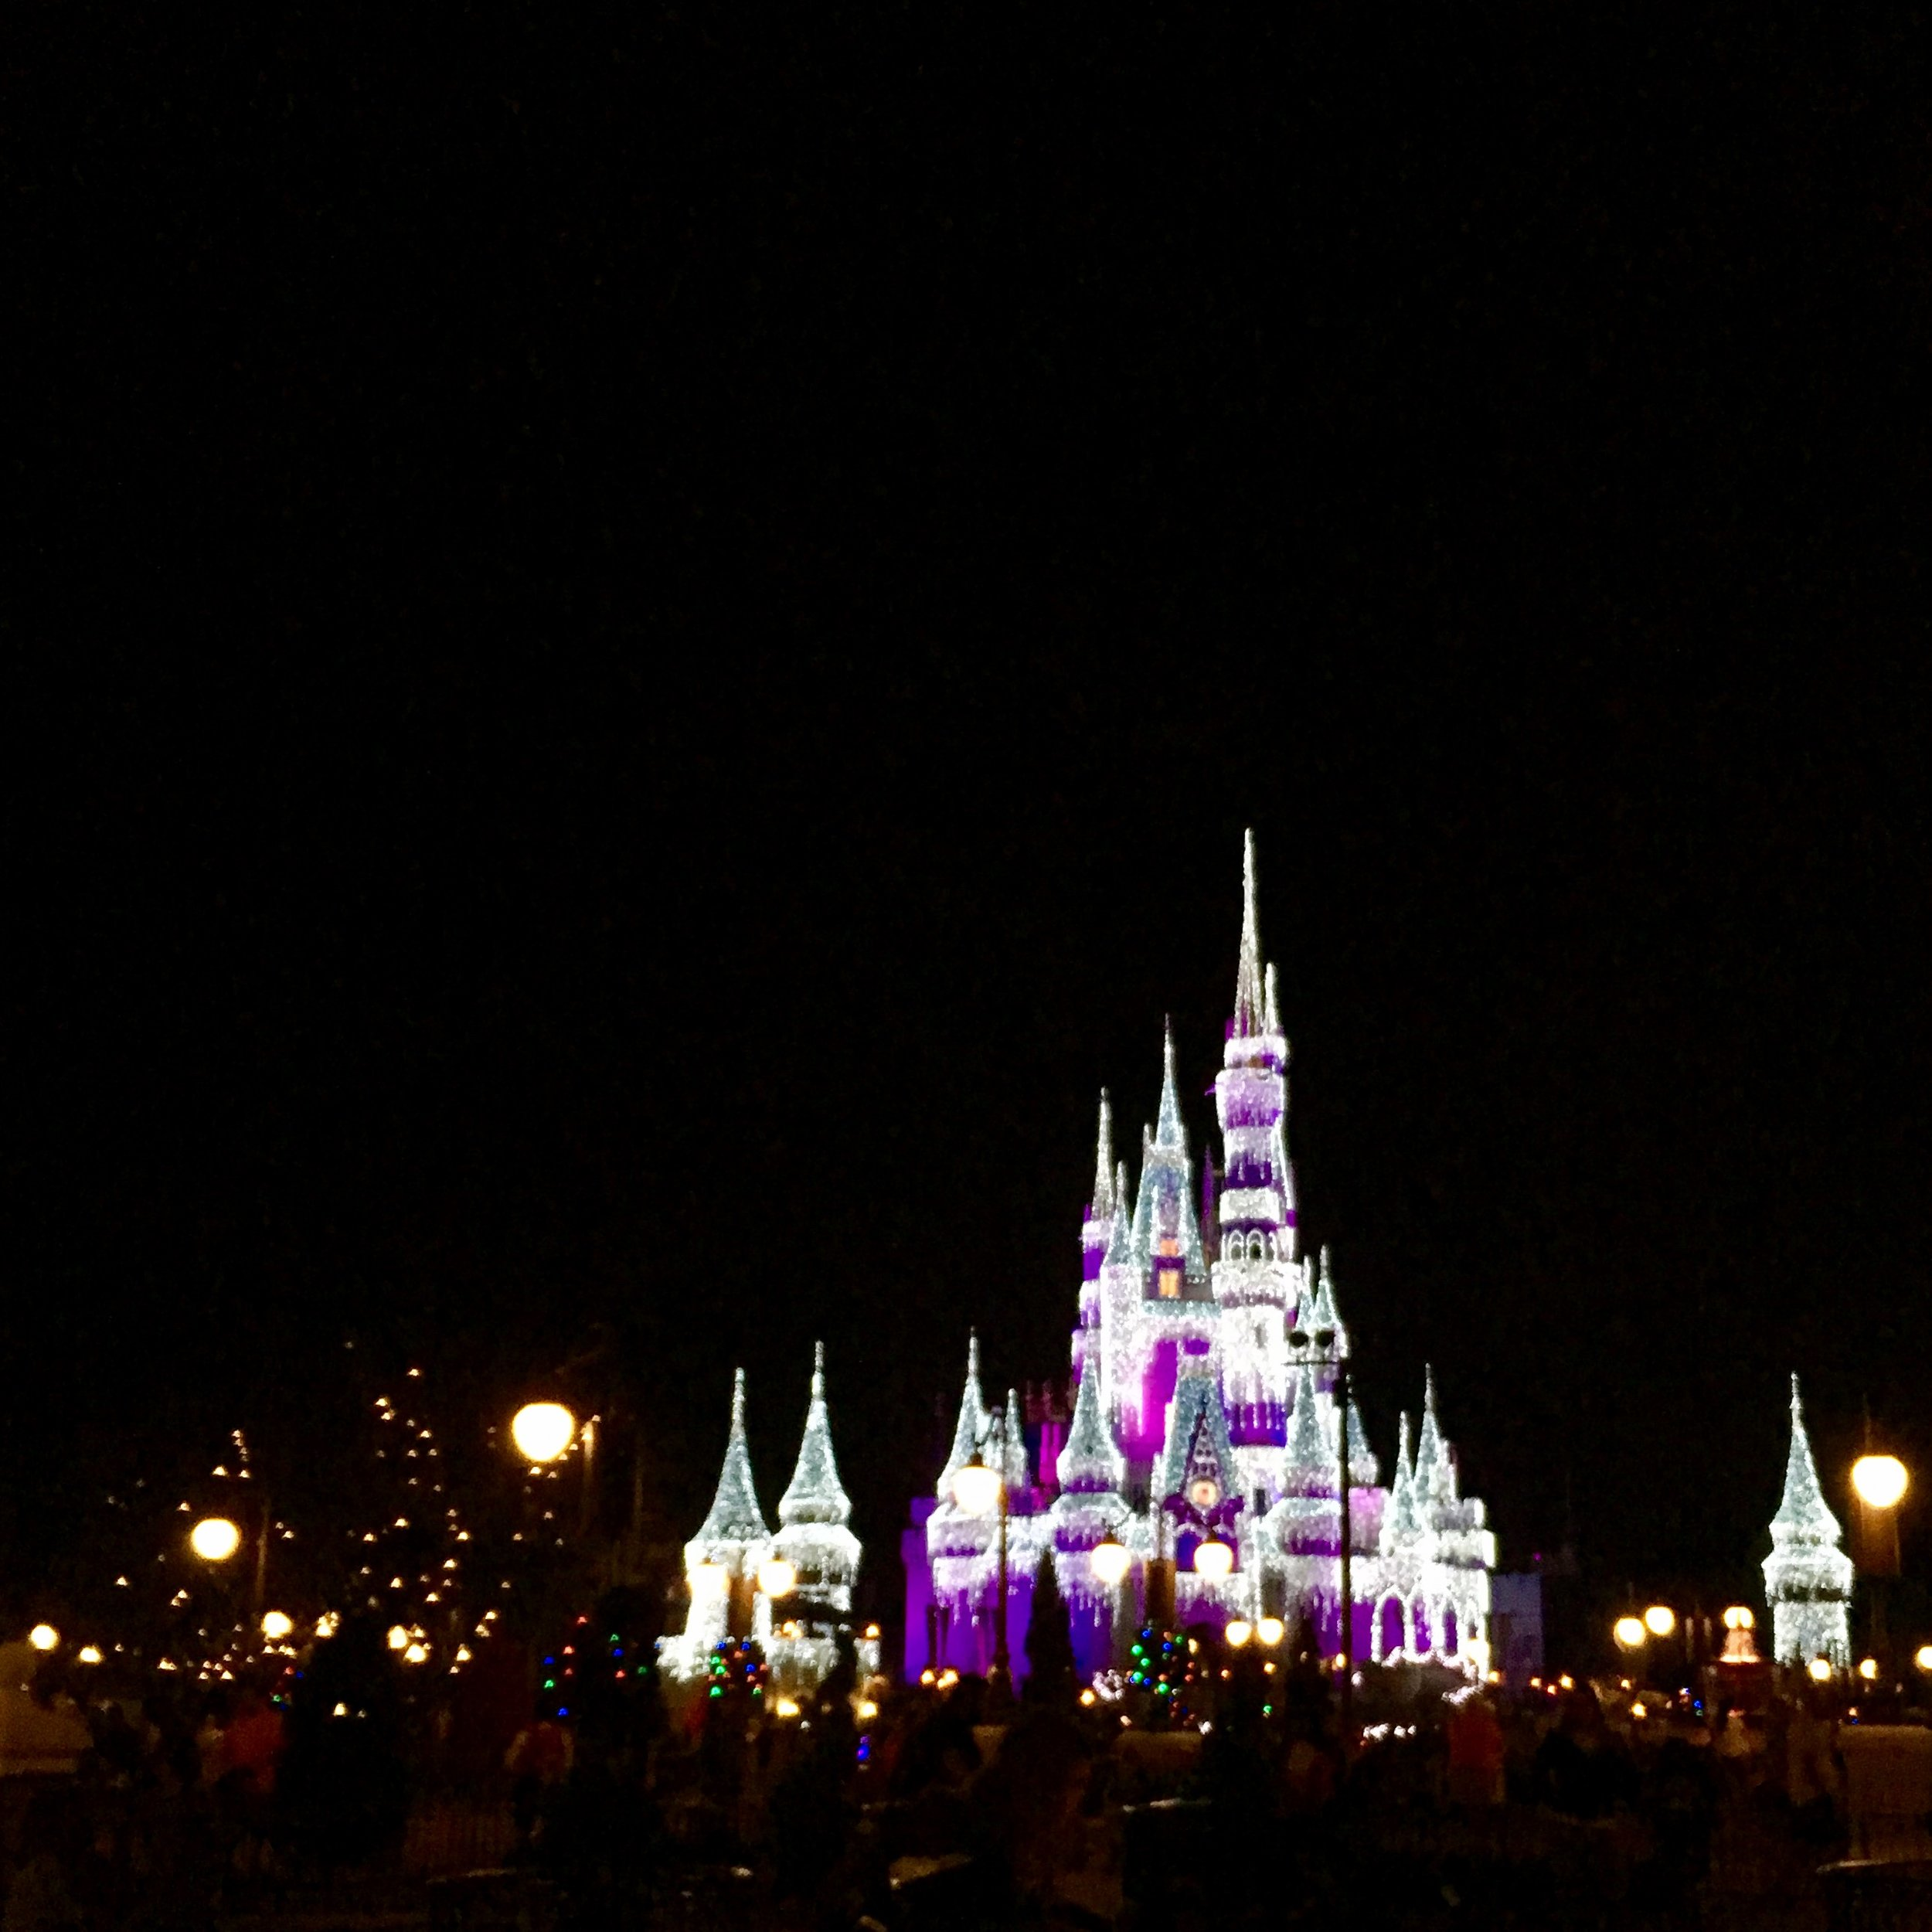 Yes, the Magic Kingdom gives me joy. I got the excited tingles just driving through the parking gate at Disneyworld. Also, how pretty is that castle?